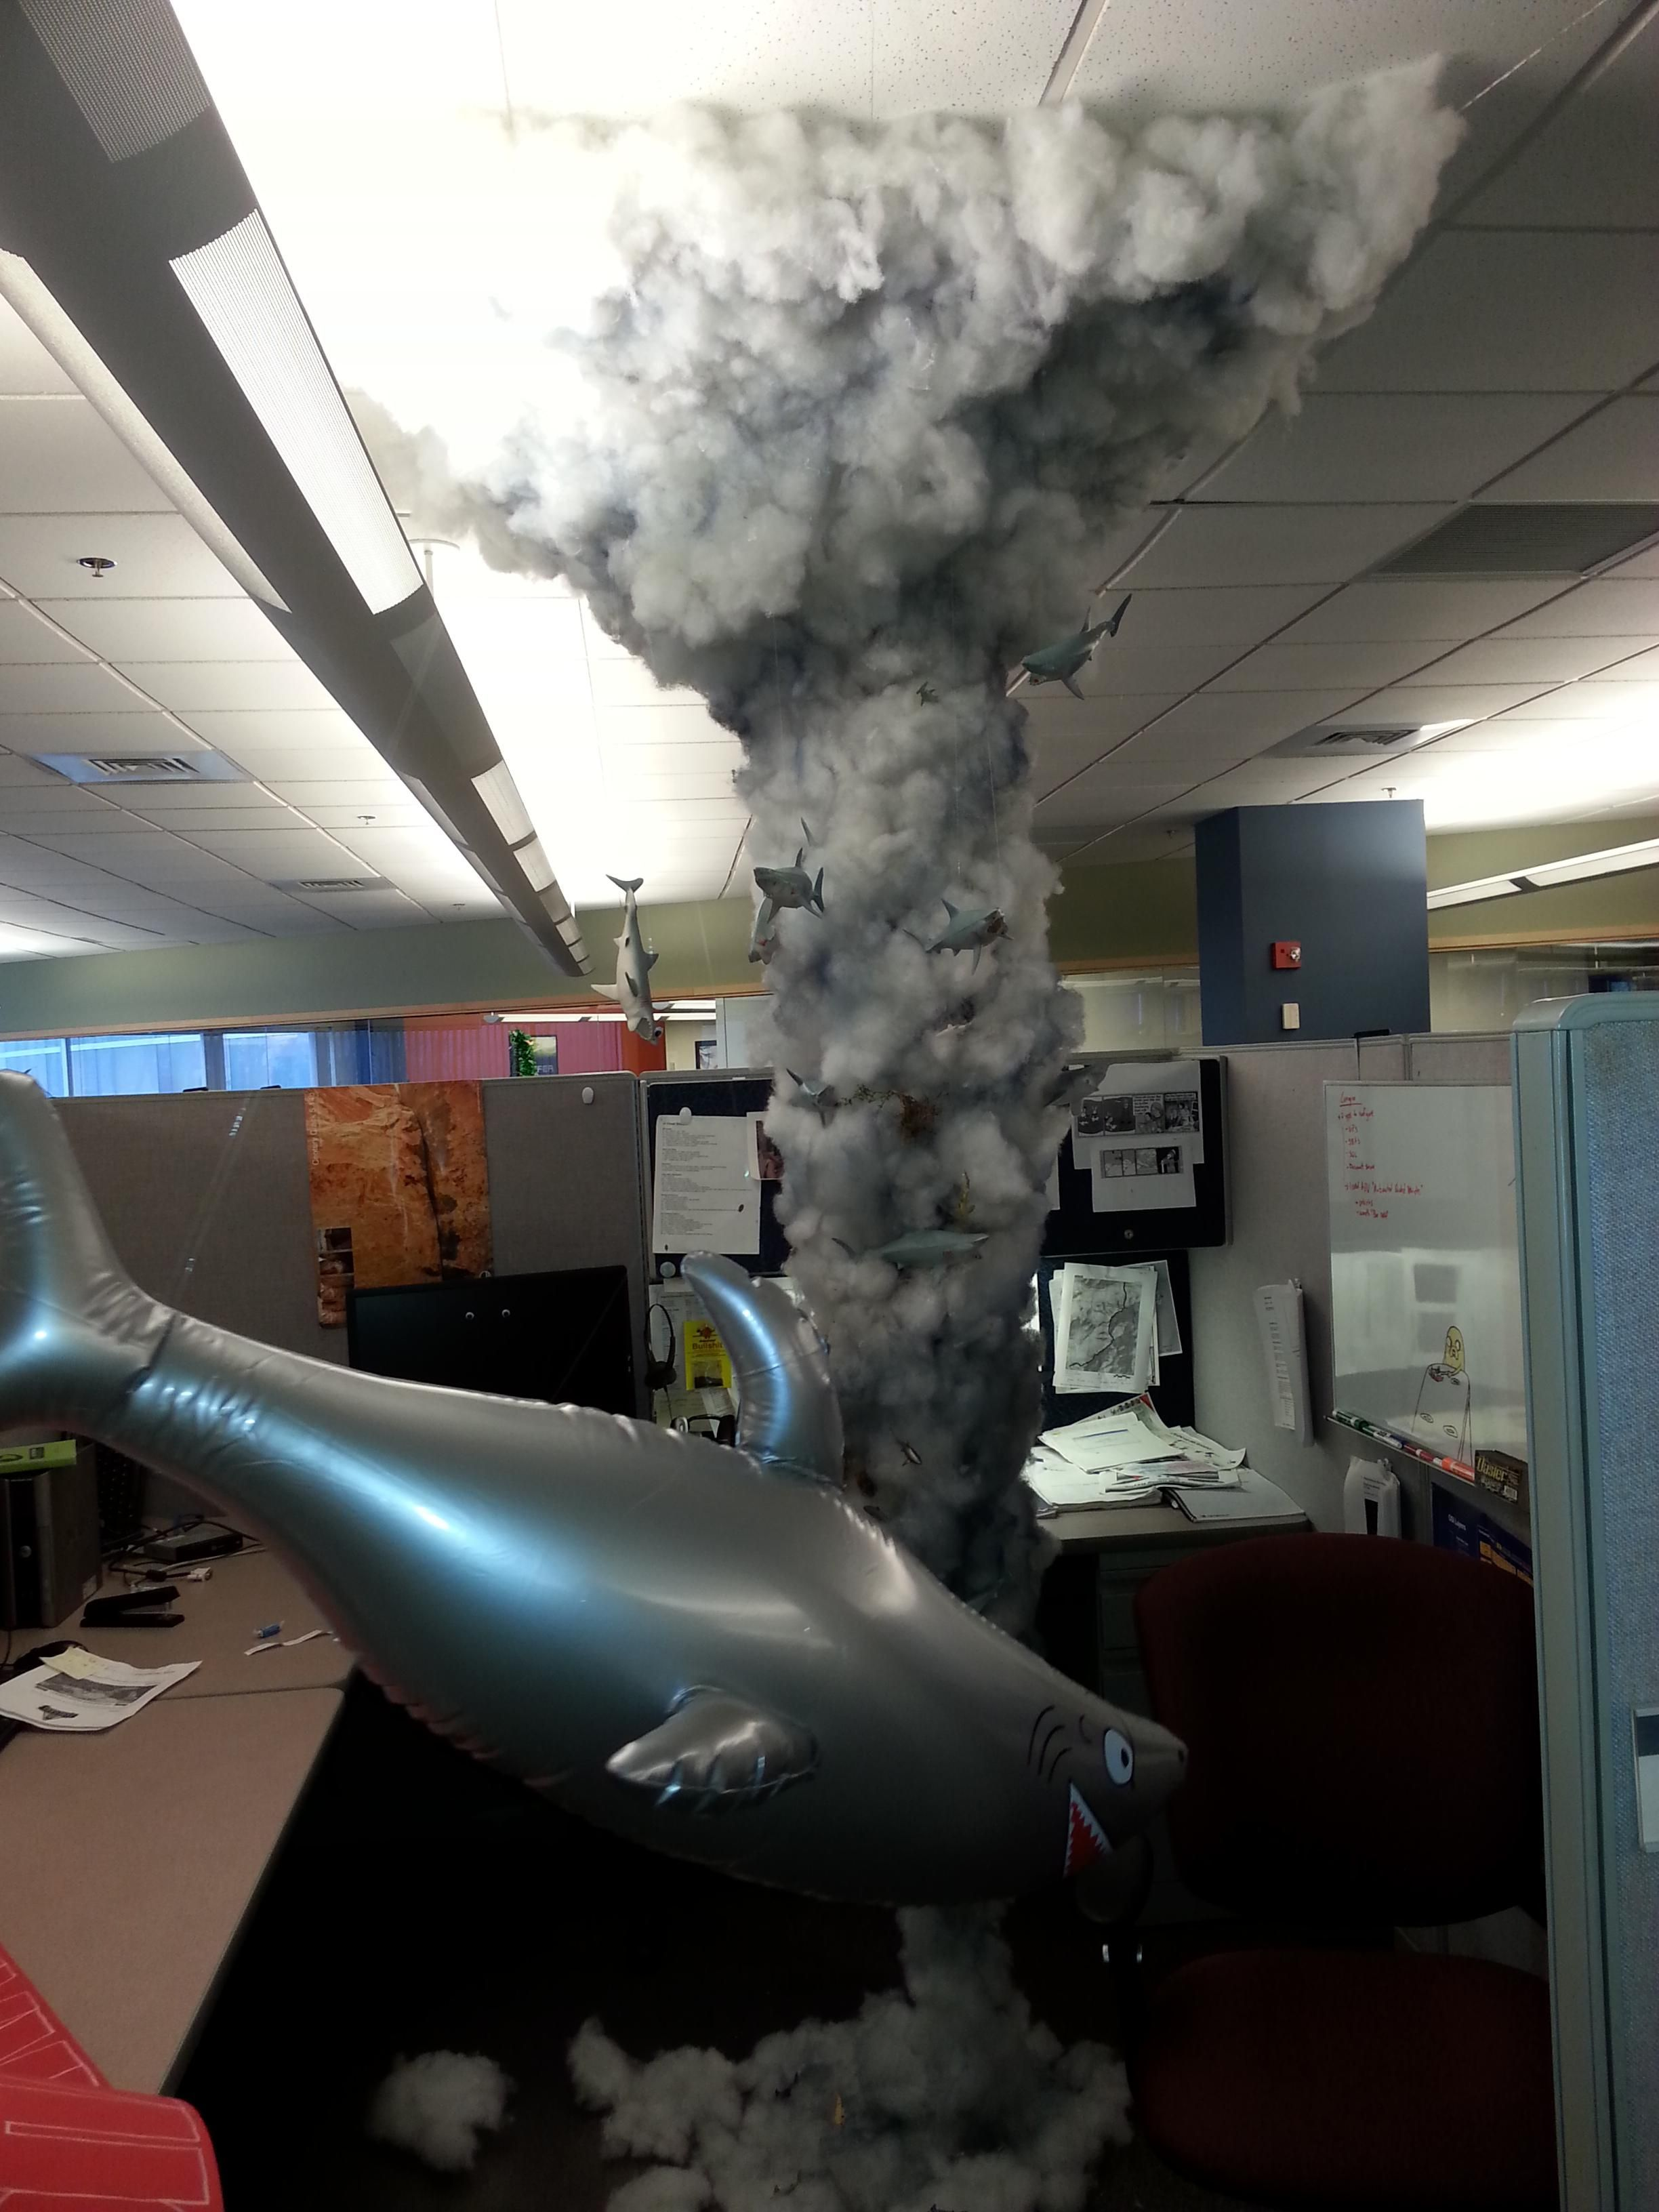 Cubicle sharknado - best coworker ever! | Funny | Work ...